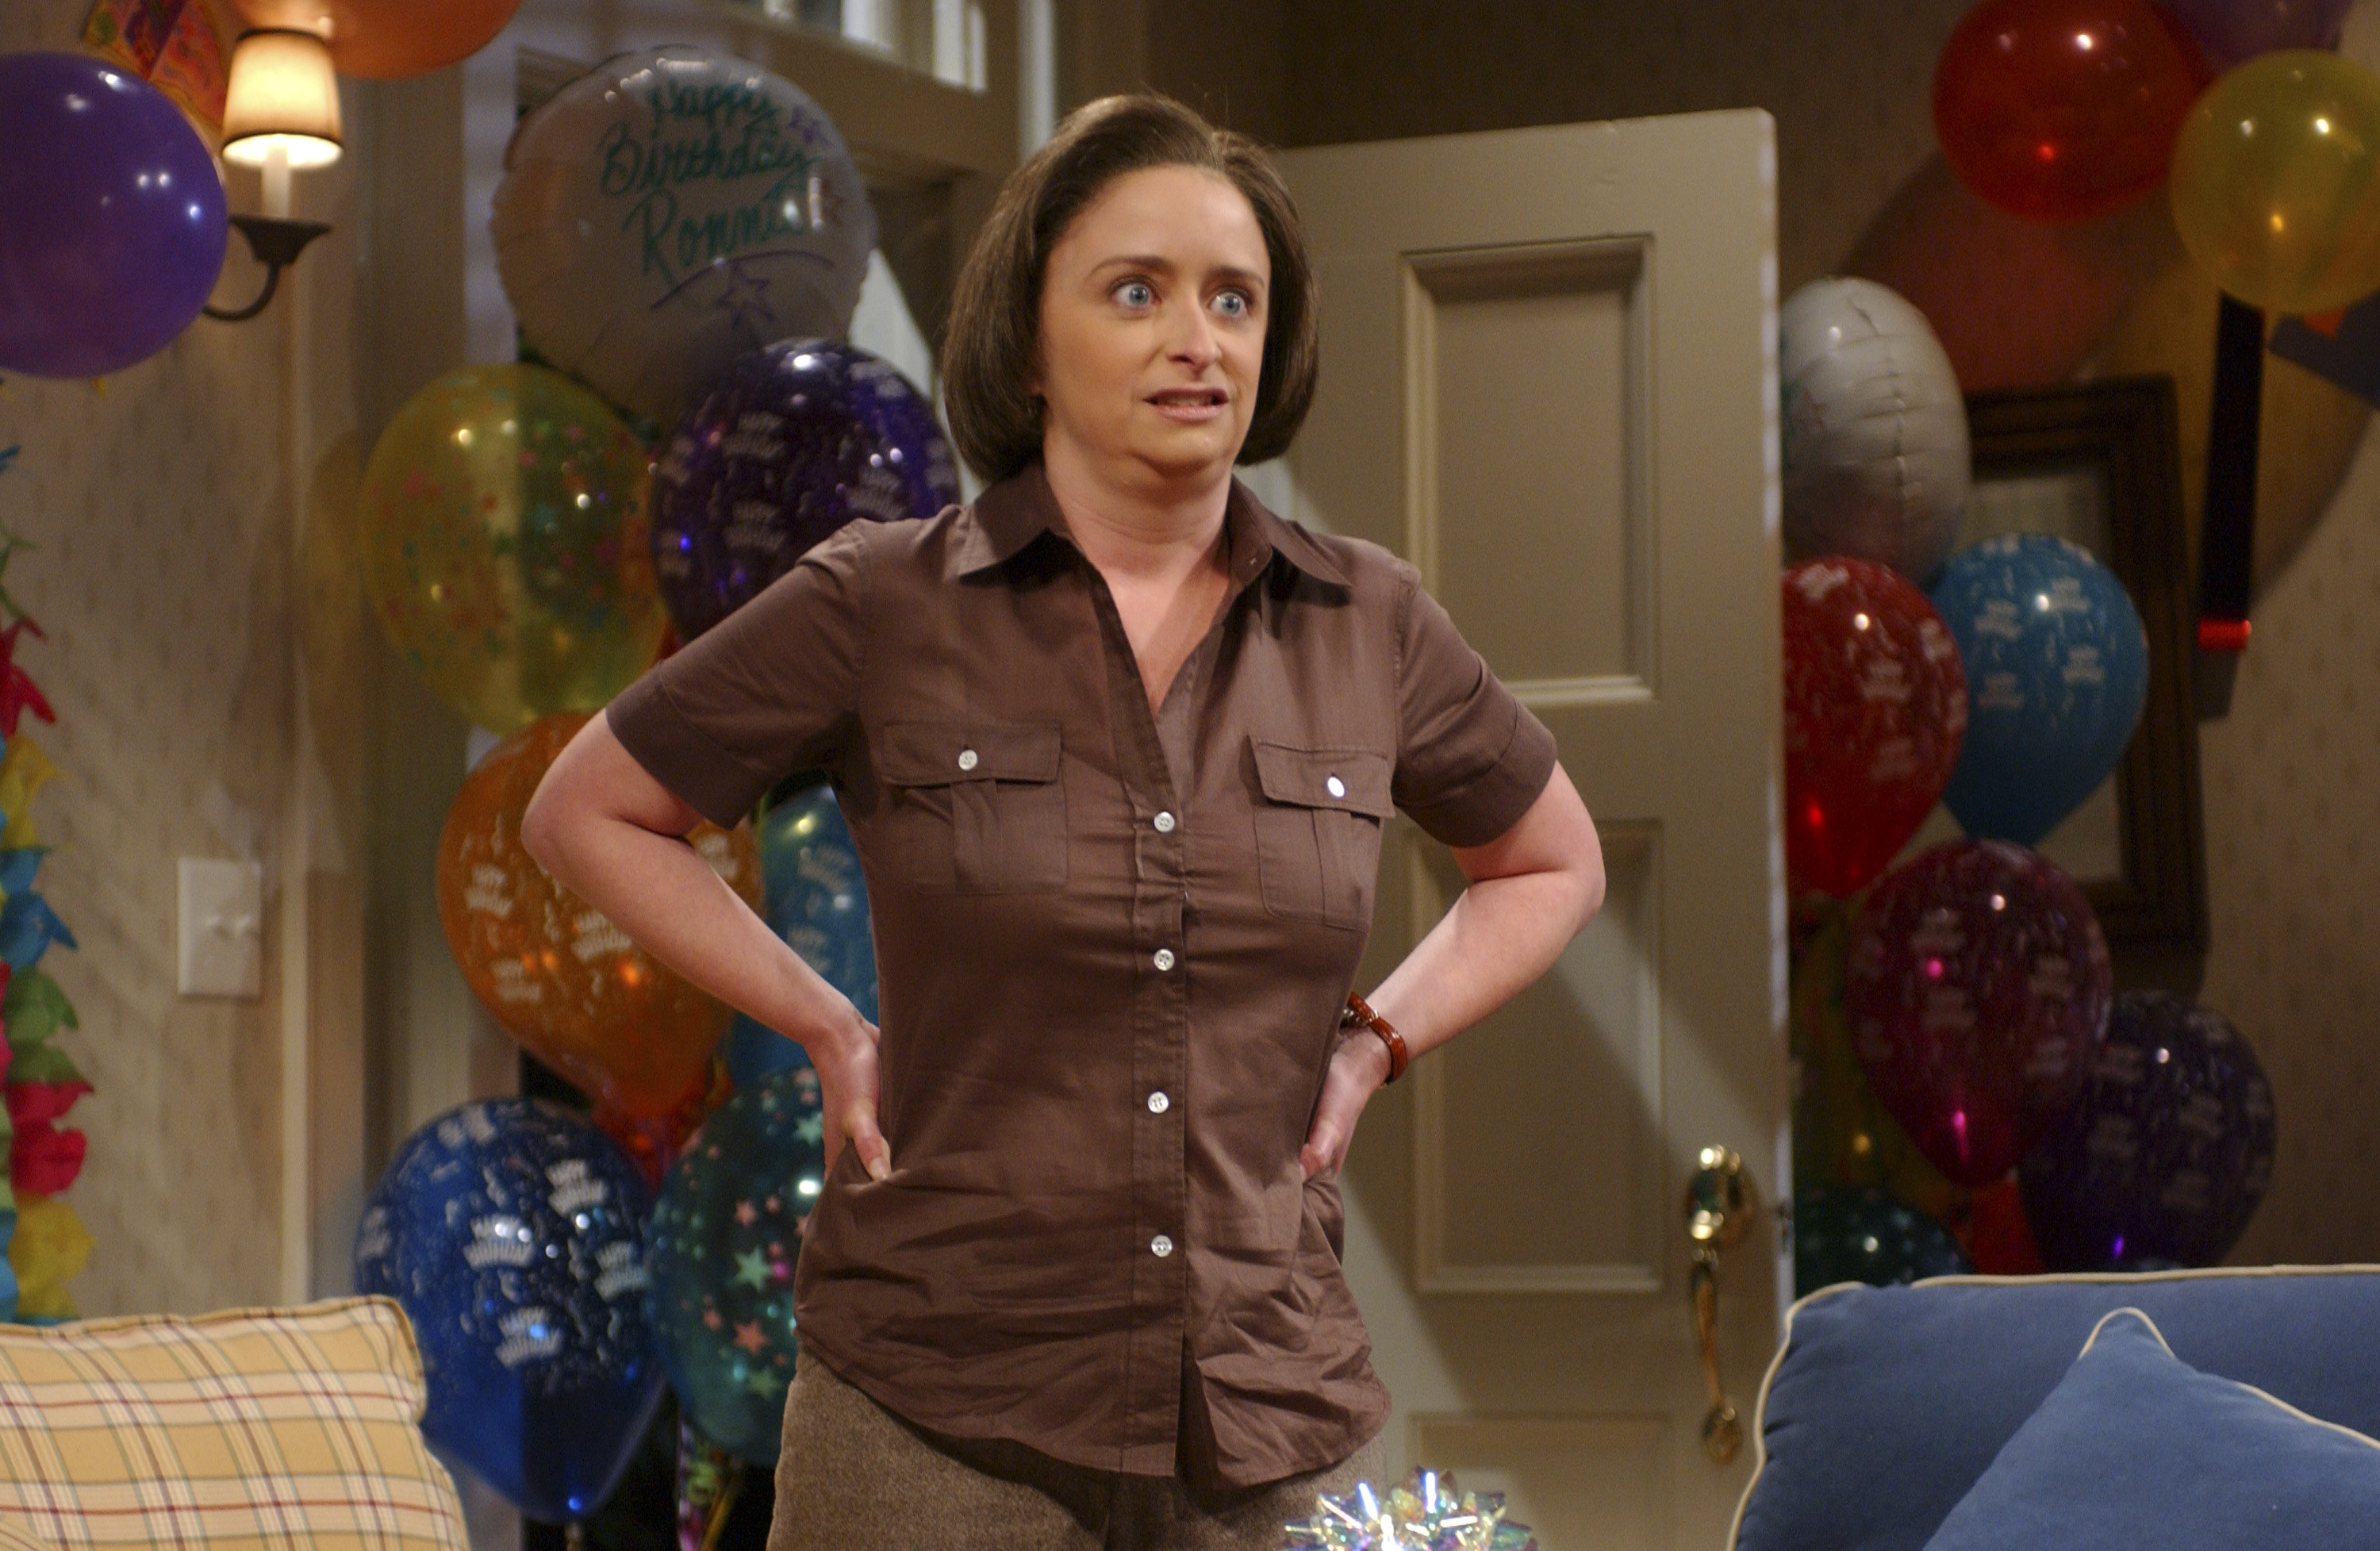 Debbie Downer at a party making a face